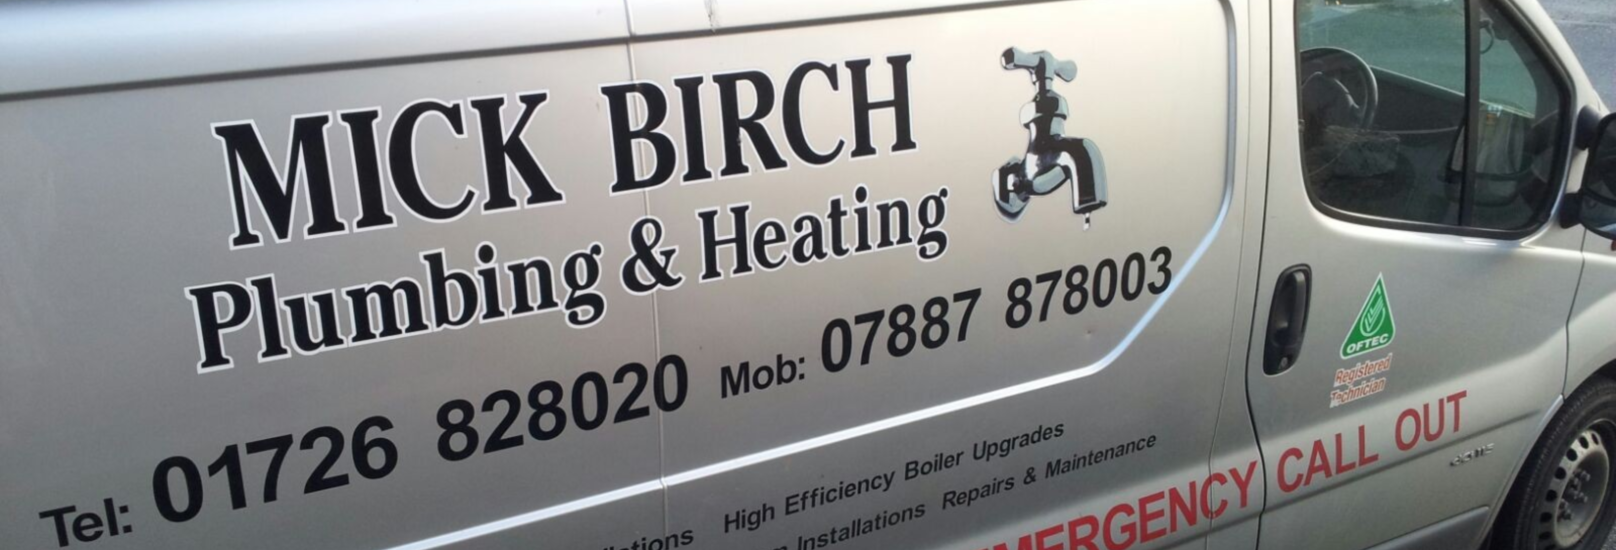 Mick Birch Plumbing & Heating - Boiler & Oil Tank Installations in Foxhole, St. Austell